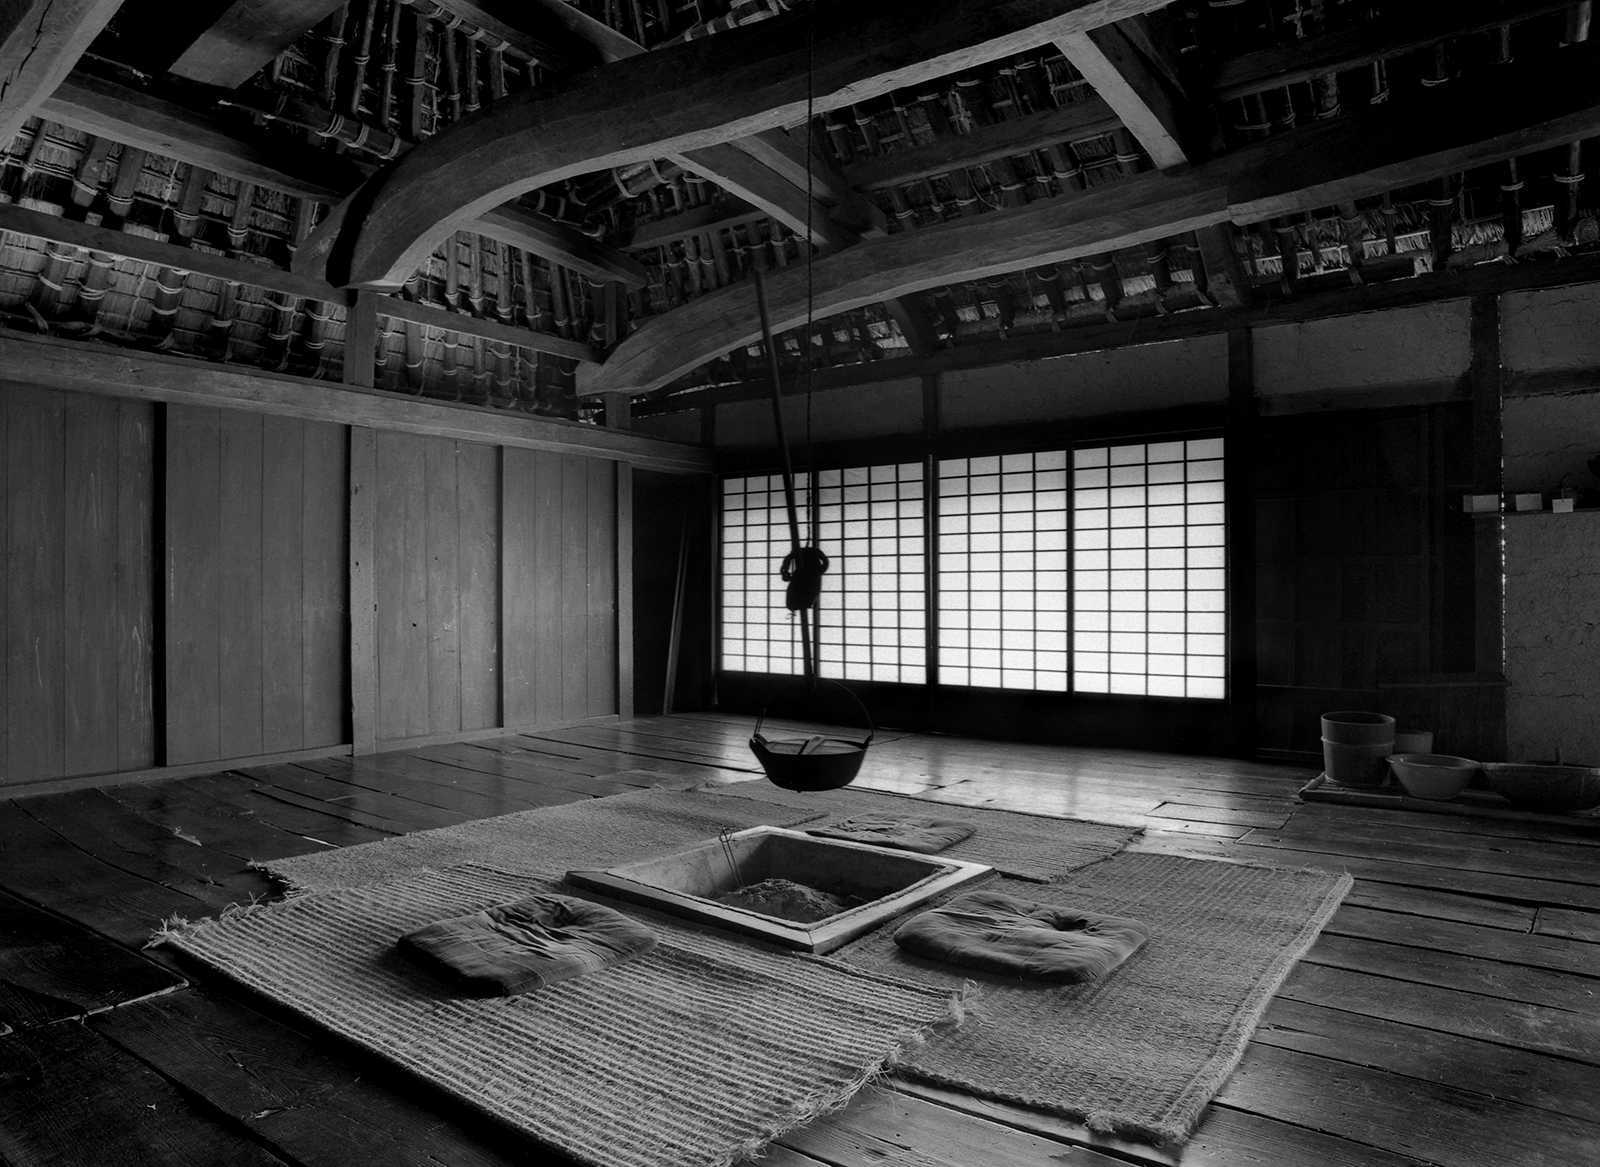 Shikoku Mura, Japan, 1979. The same interior space photographed straight on and form the corners.